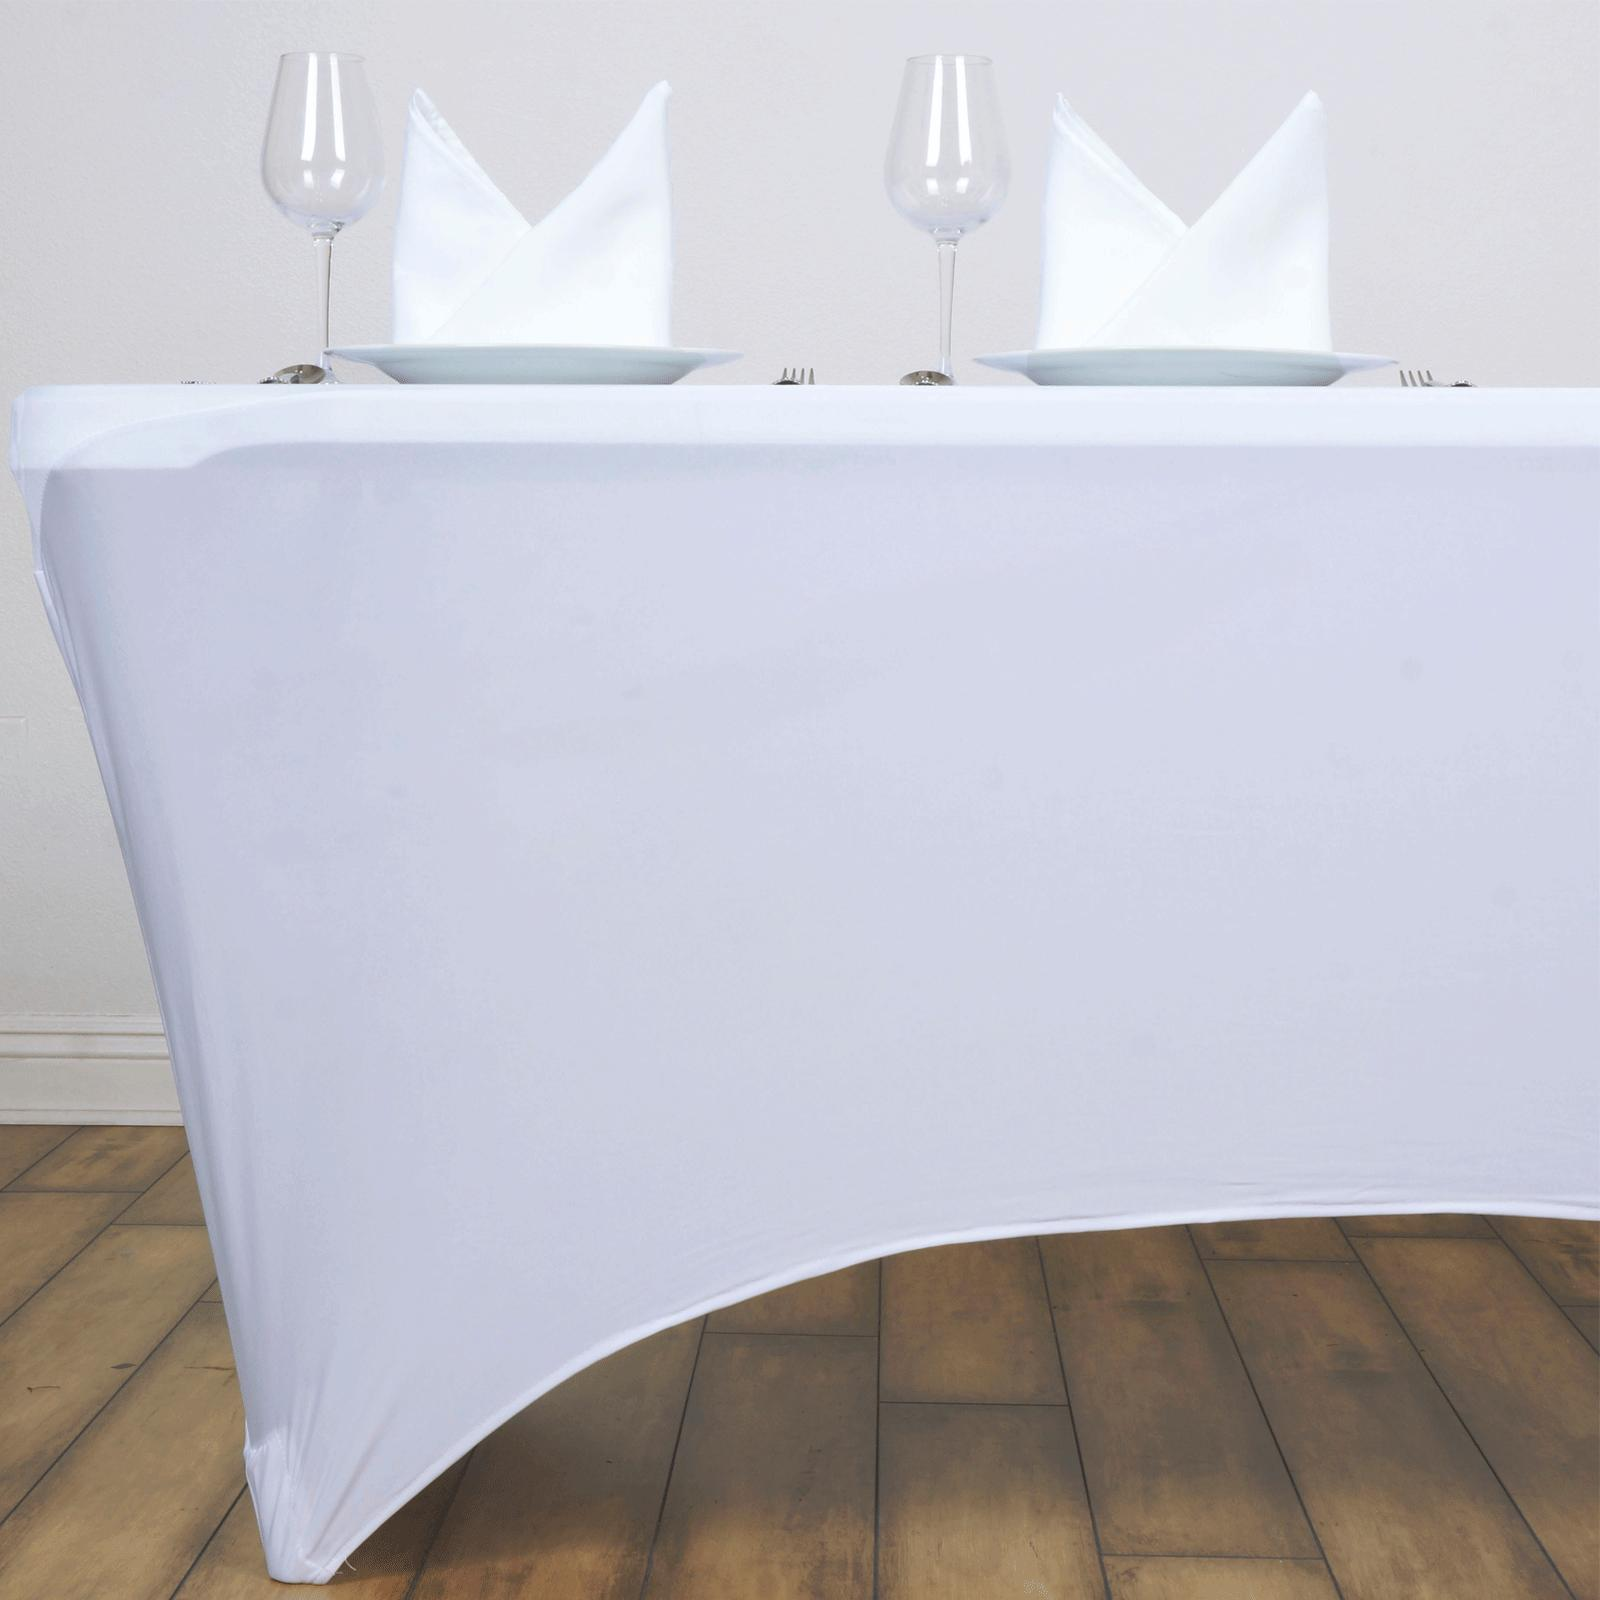 Wedding Table Cover Rectangular Fitted Stretch Tablecloth